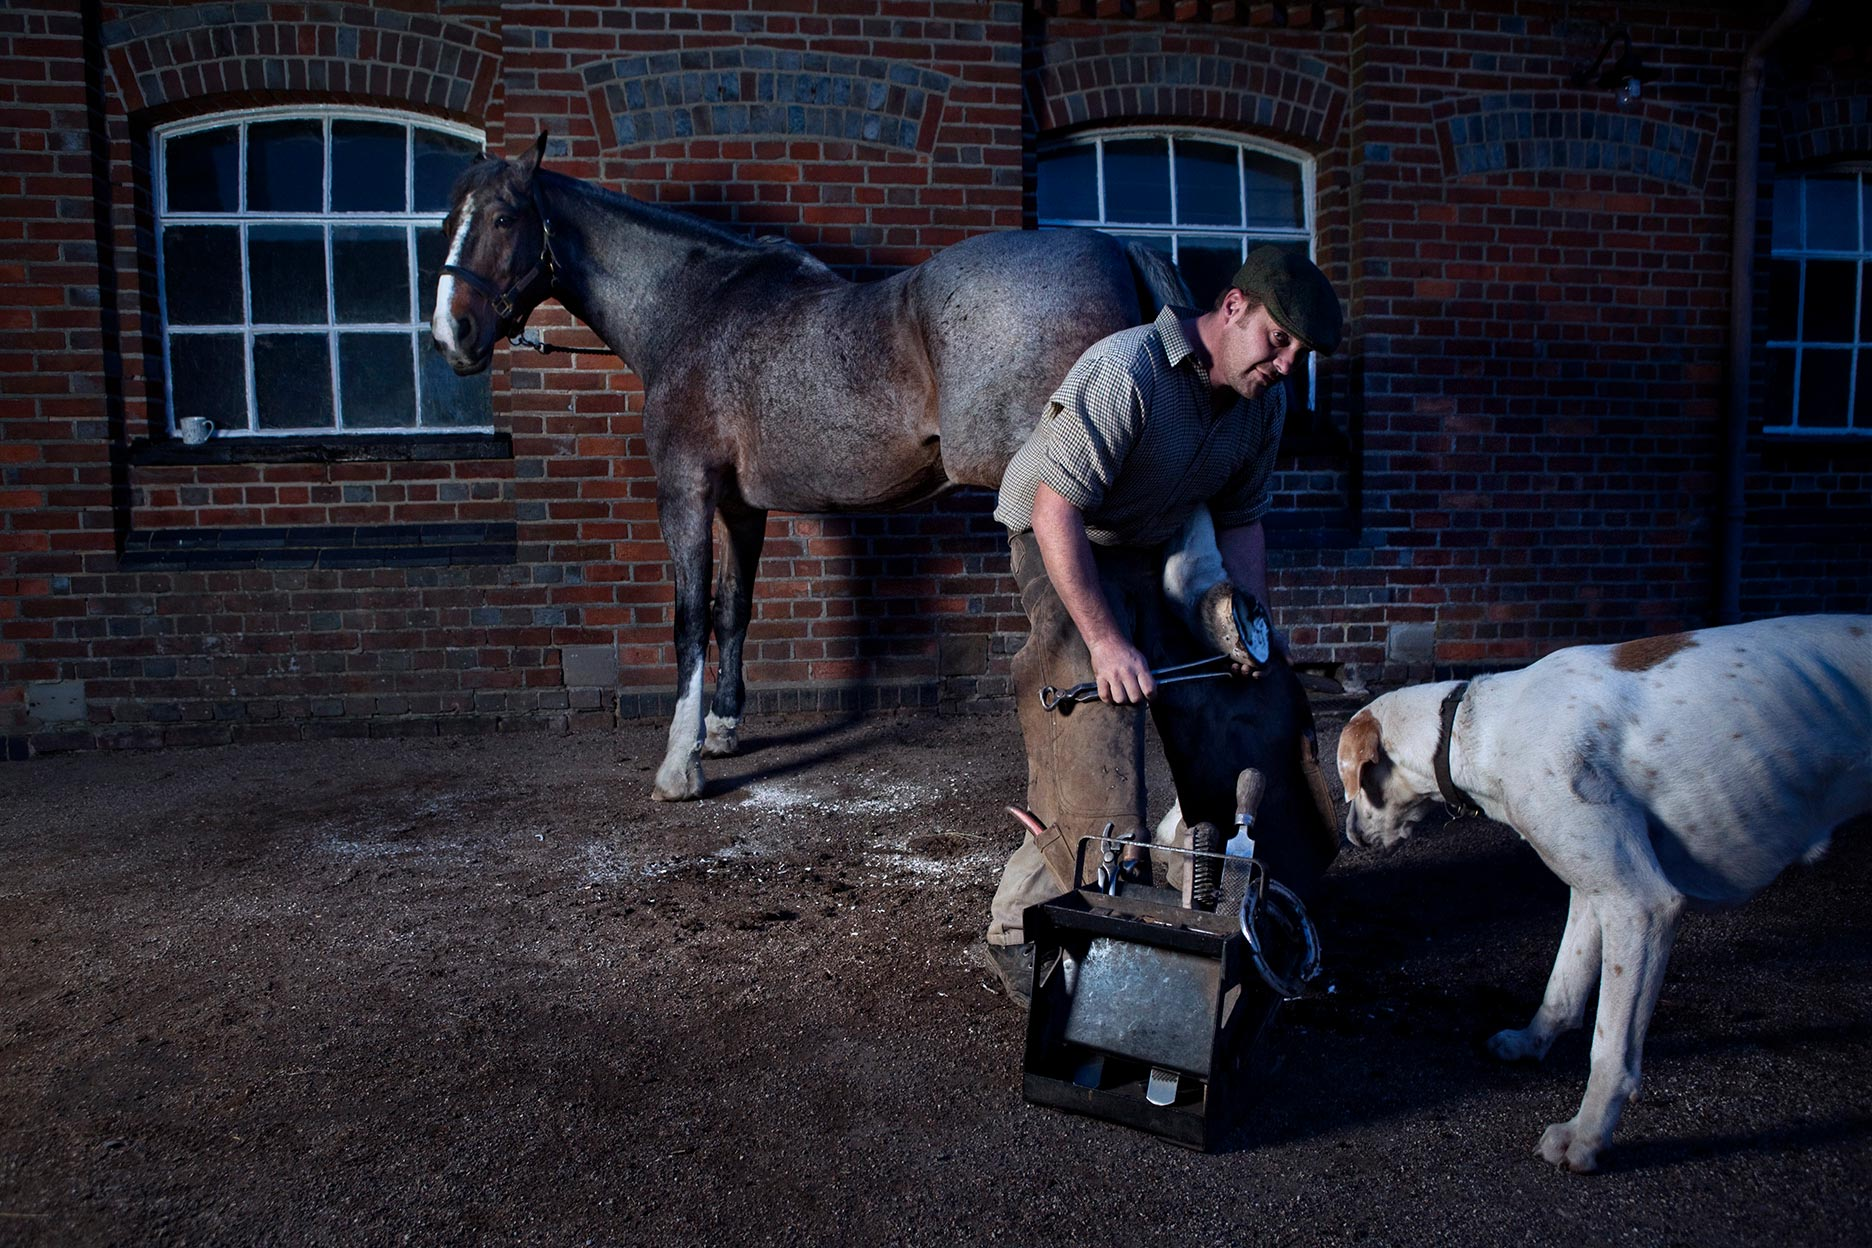 Colin_Barker_Farrier_Trimming_Hoof